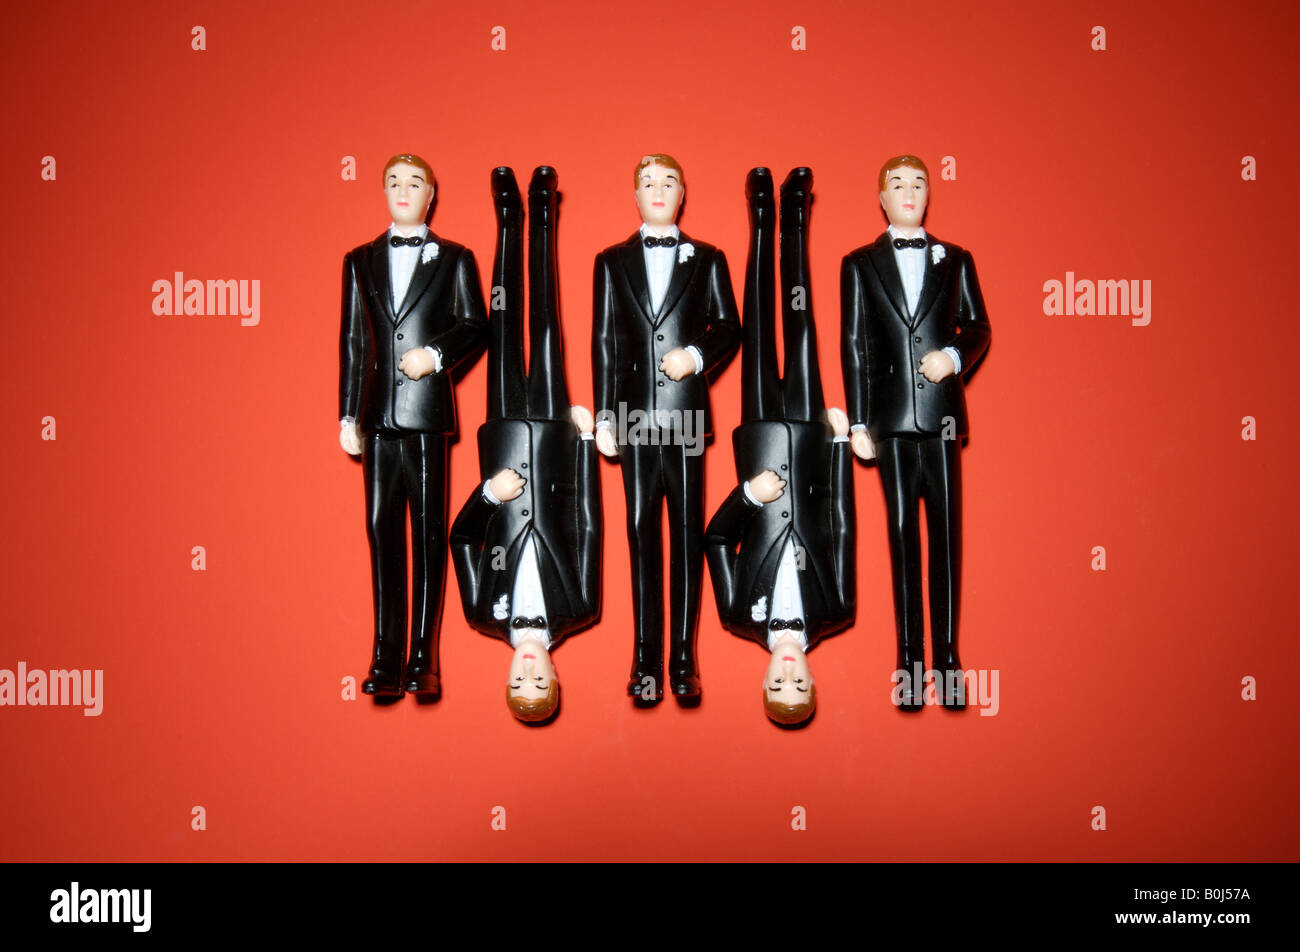 Five plastic men in tuxedos on a red background - Stock Image